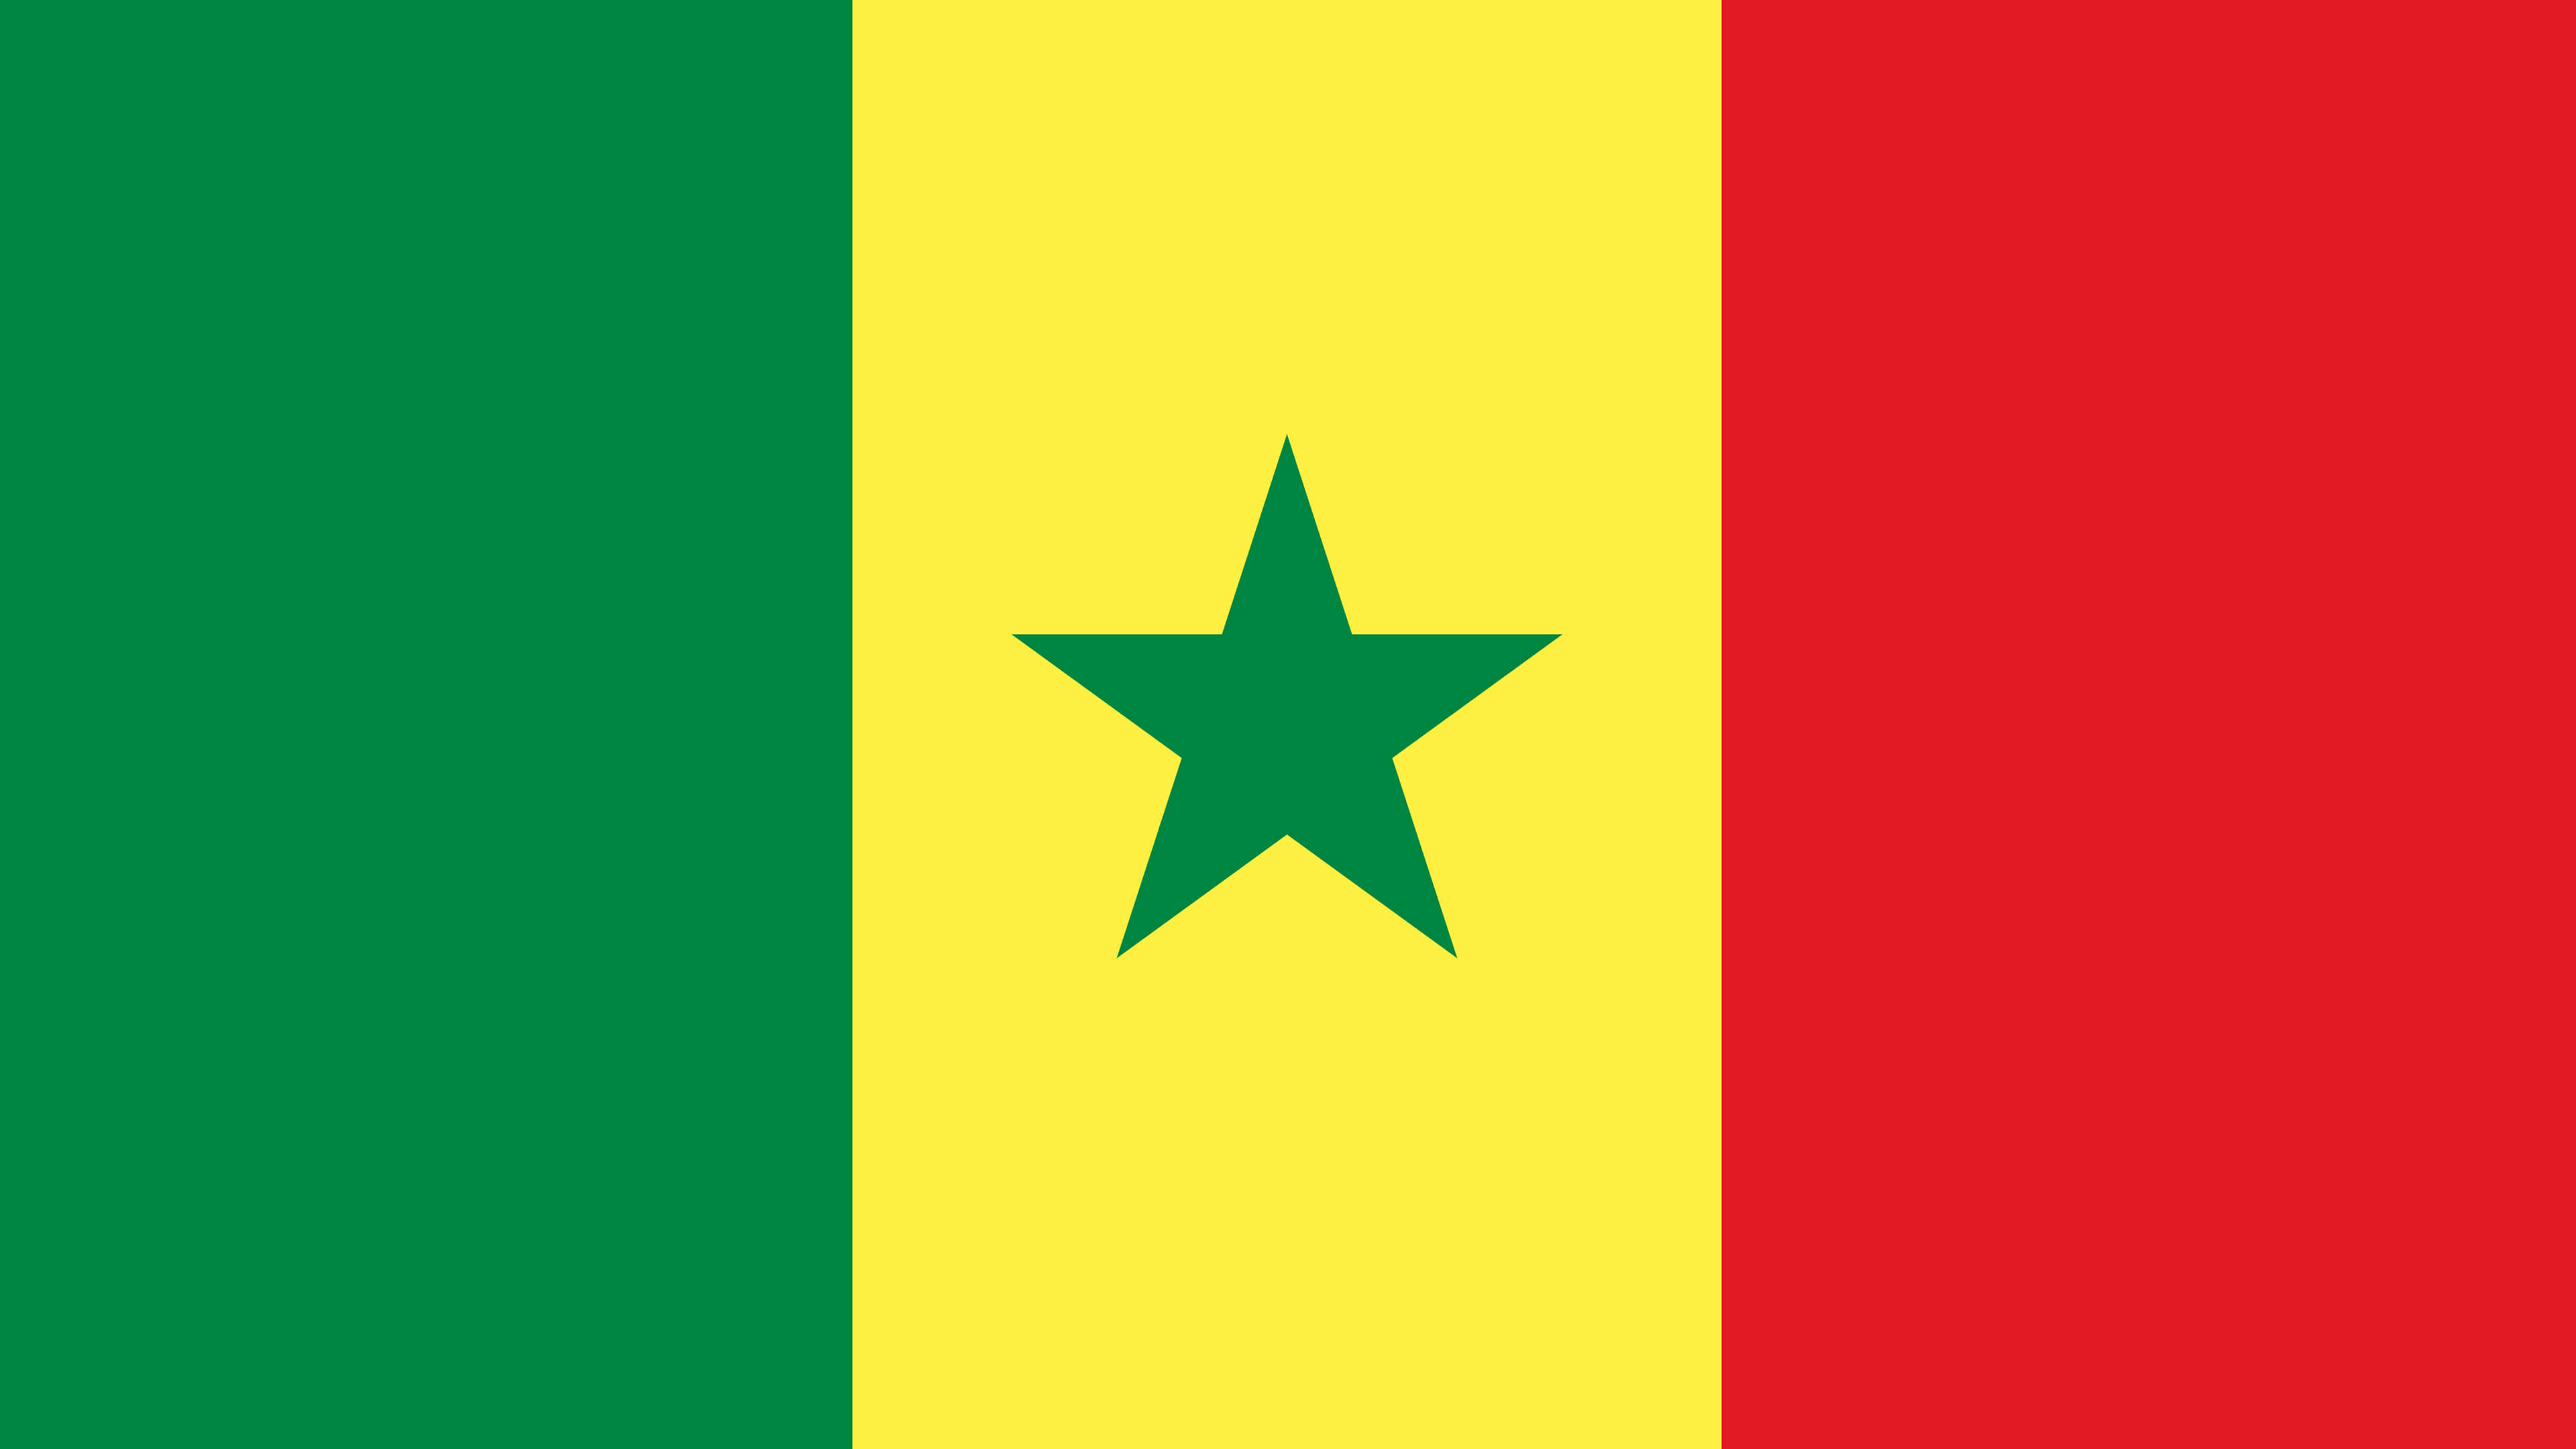 senegal flag uhd 4k wallpaper